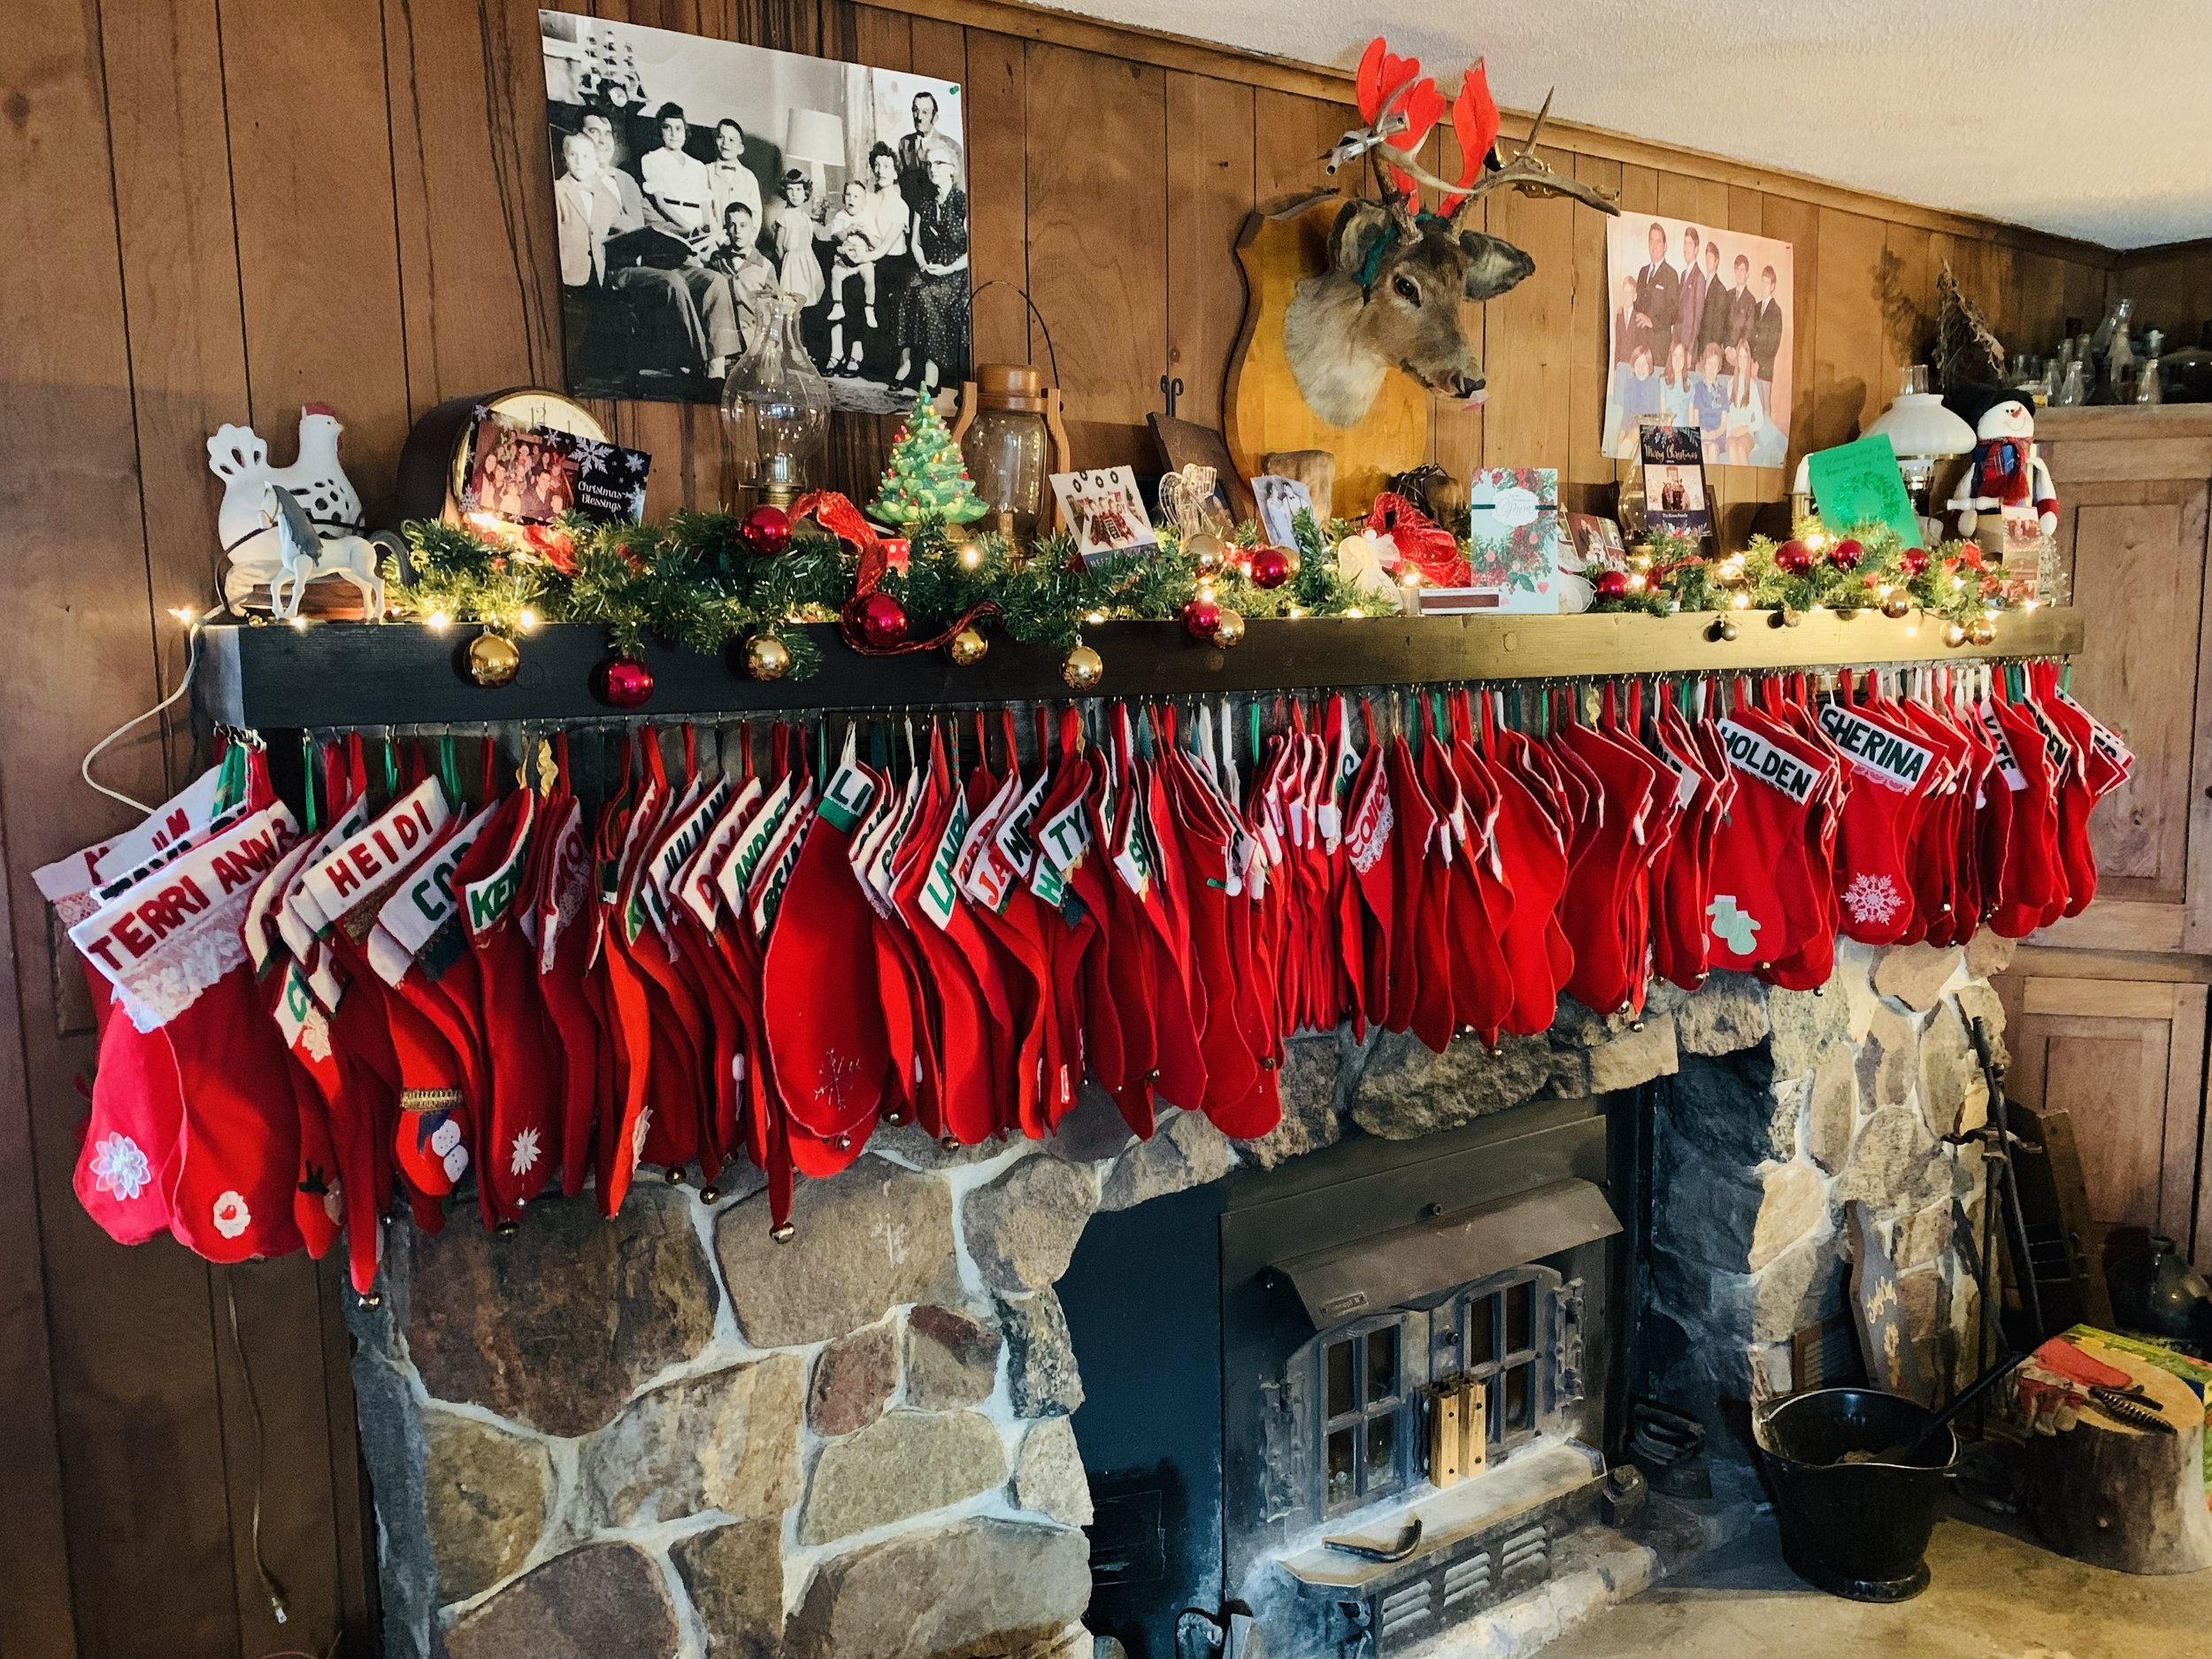 134 Stockings on my grandmother's fireplace this year